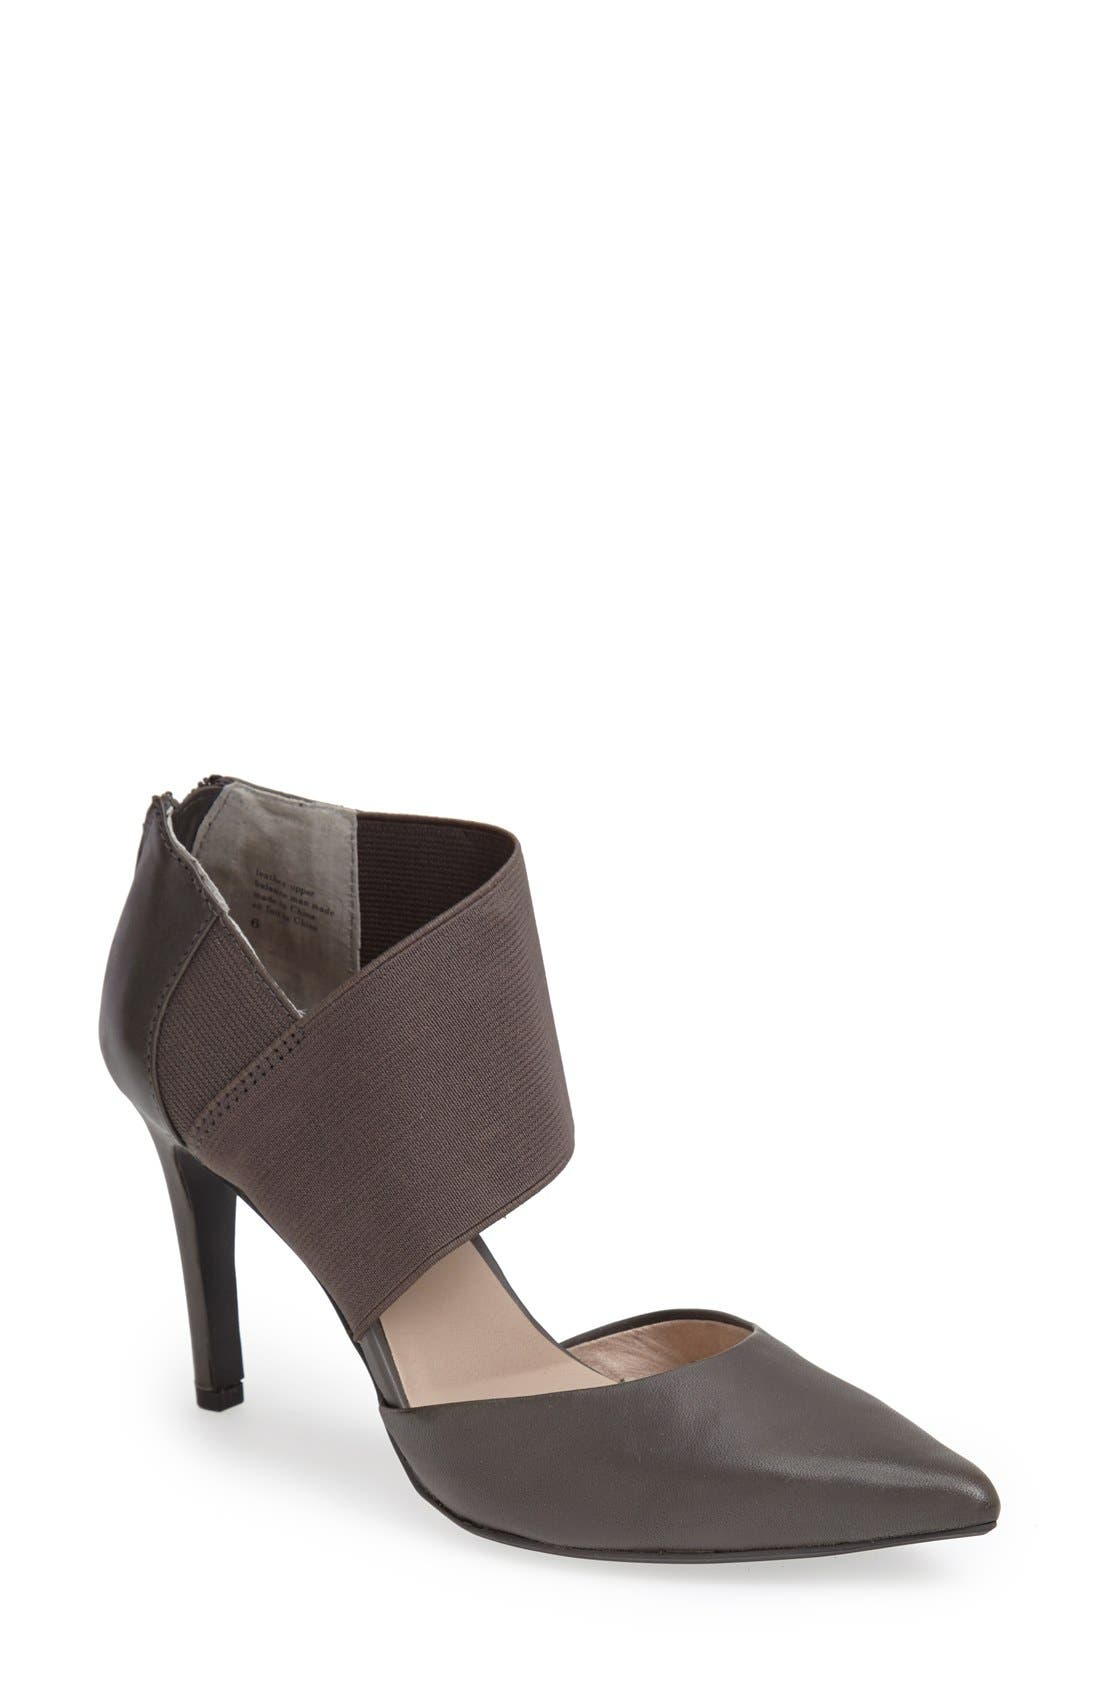 Alternate Image 1 Selected - Seychelles 'Riddle' d'Orsay Pump (Women)